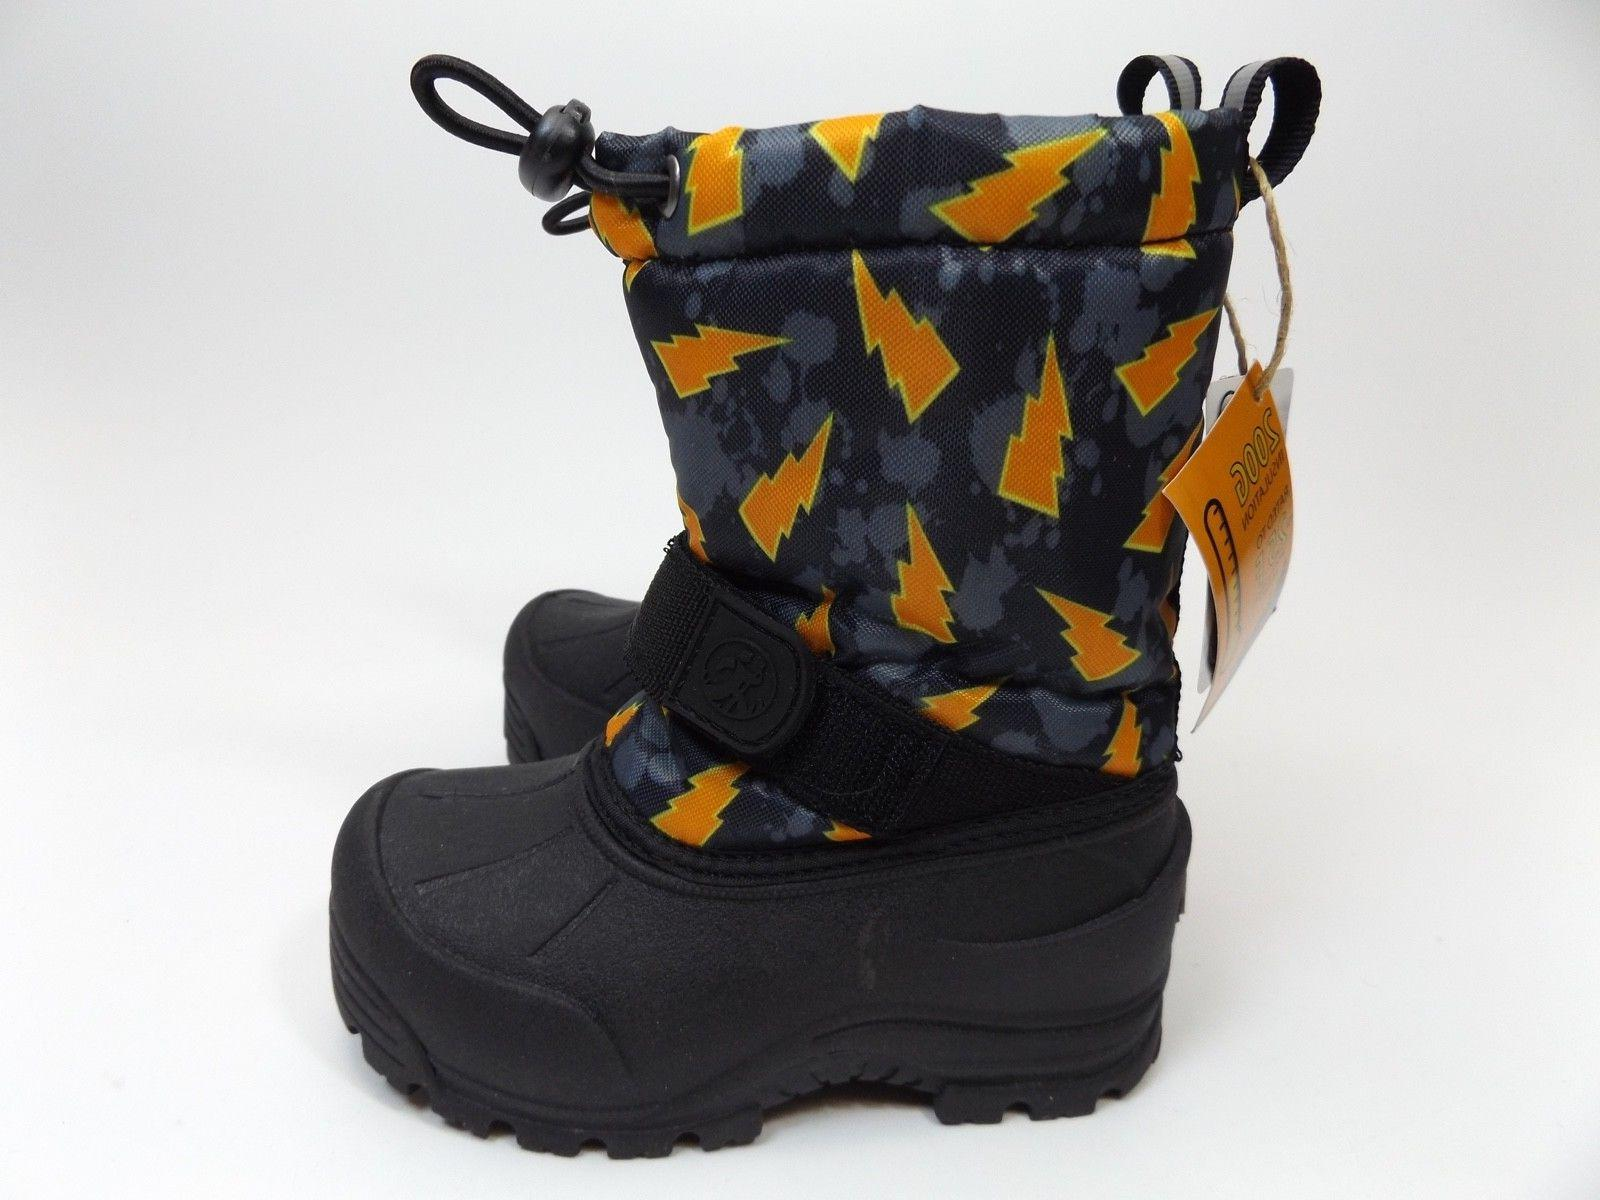 Northside ICICLE Boots 8960